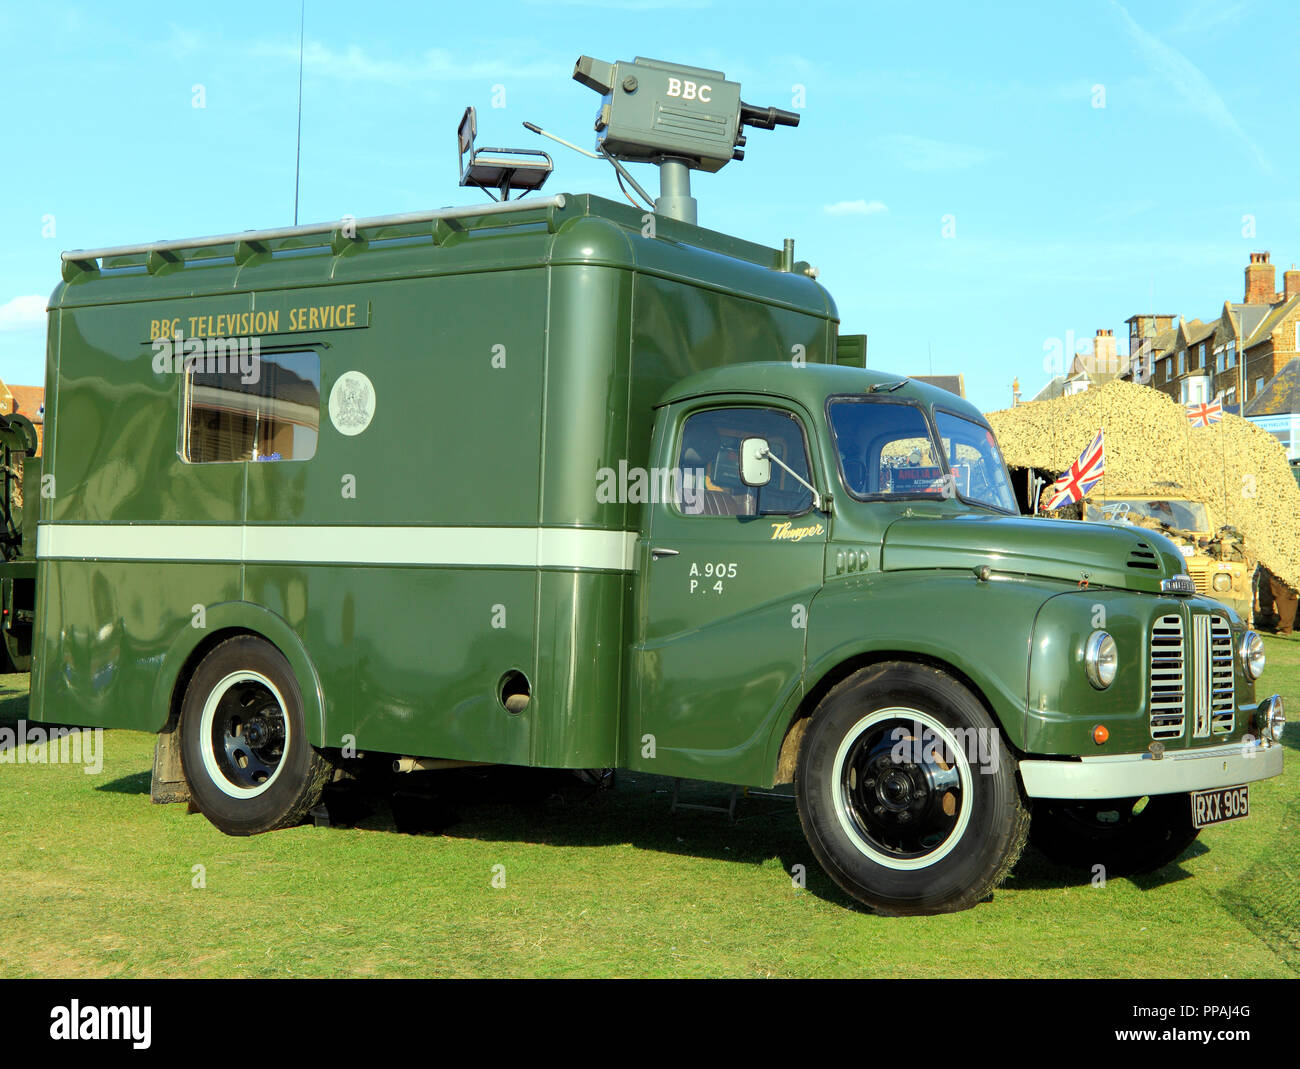 BBC Television, van, camera, outside broadcast, vintage, 1950s - Stock Image